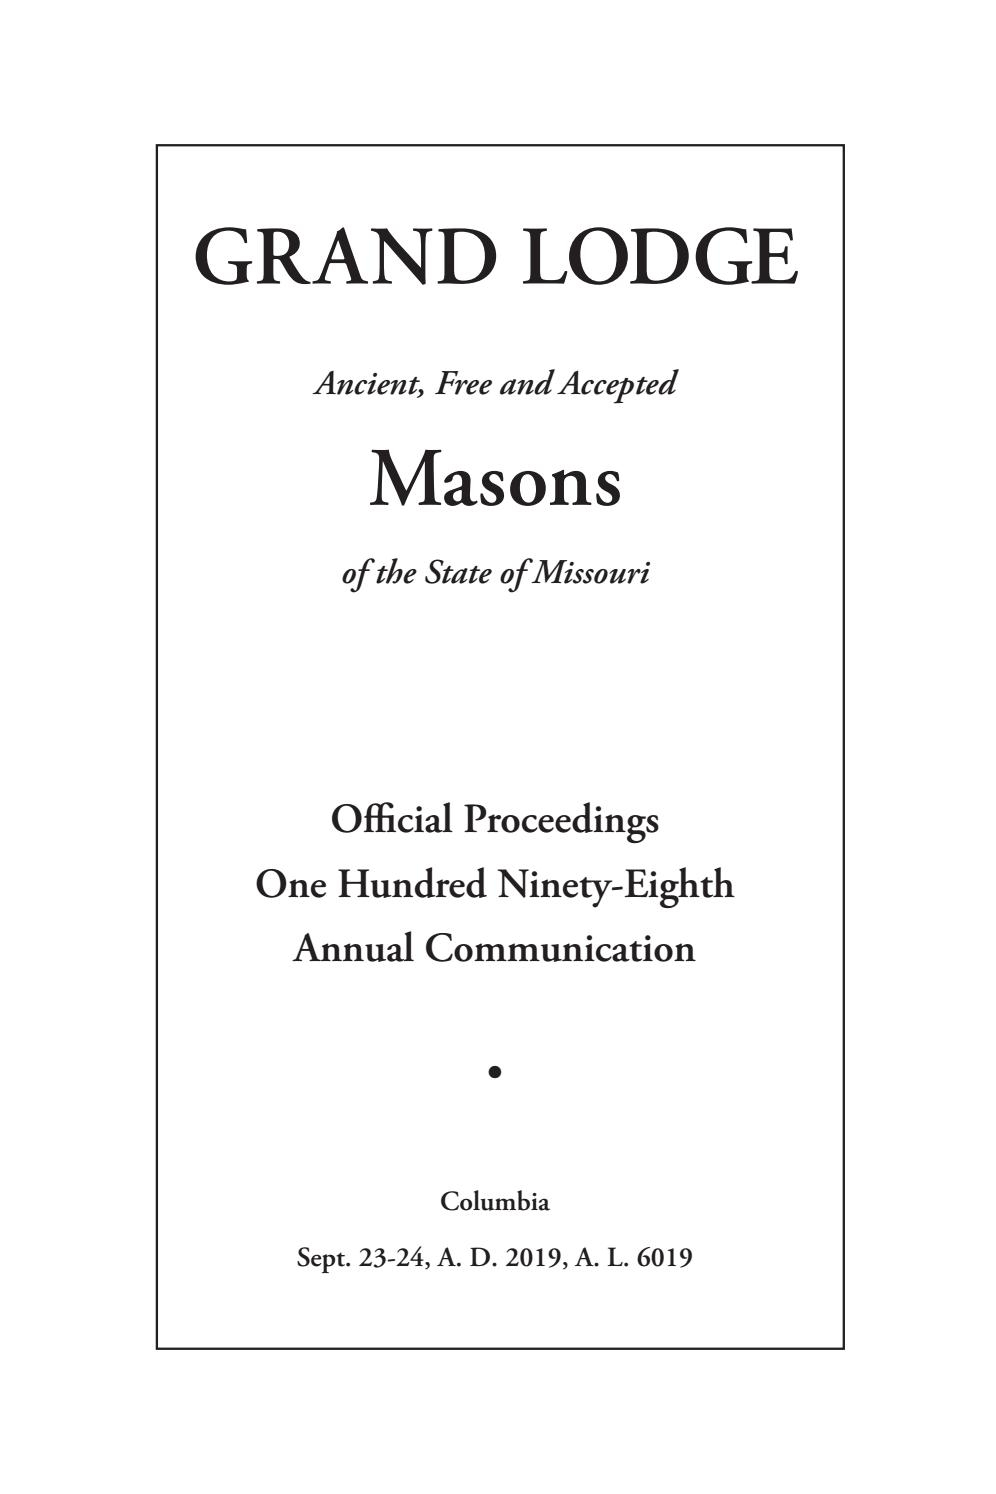 Official Proceedings - Grand Lodge Mo Annual Communication With Regard To 3Rd & Lindsley Nashville Calendar 2021 18